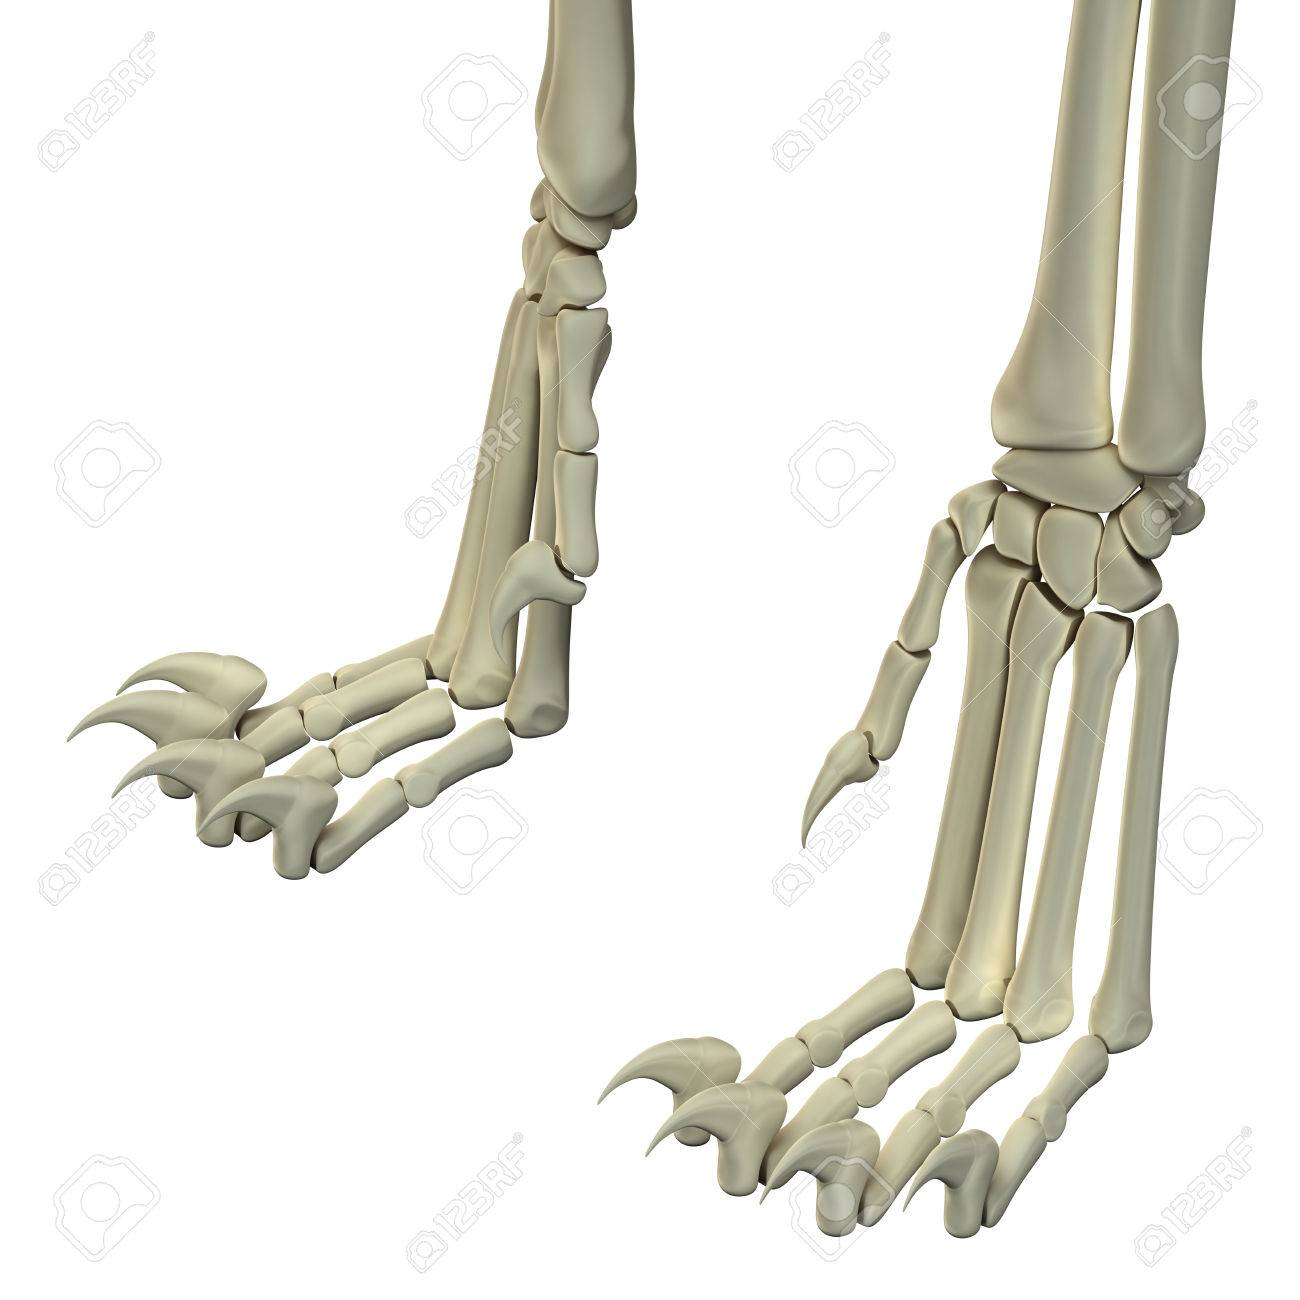 Cat Hind Legs Anatomy Bones Stock Photo, Picture And Royalty Free ...